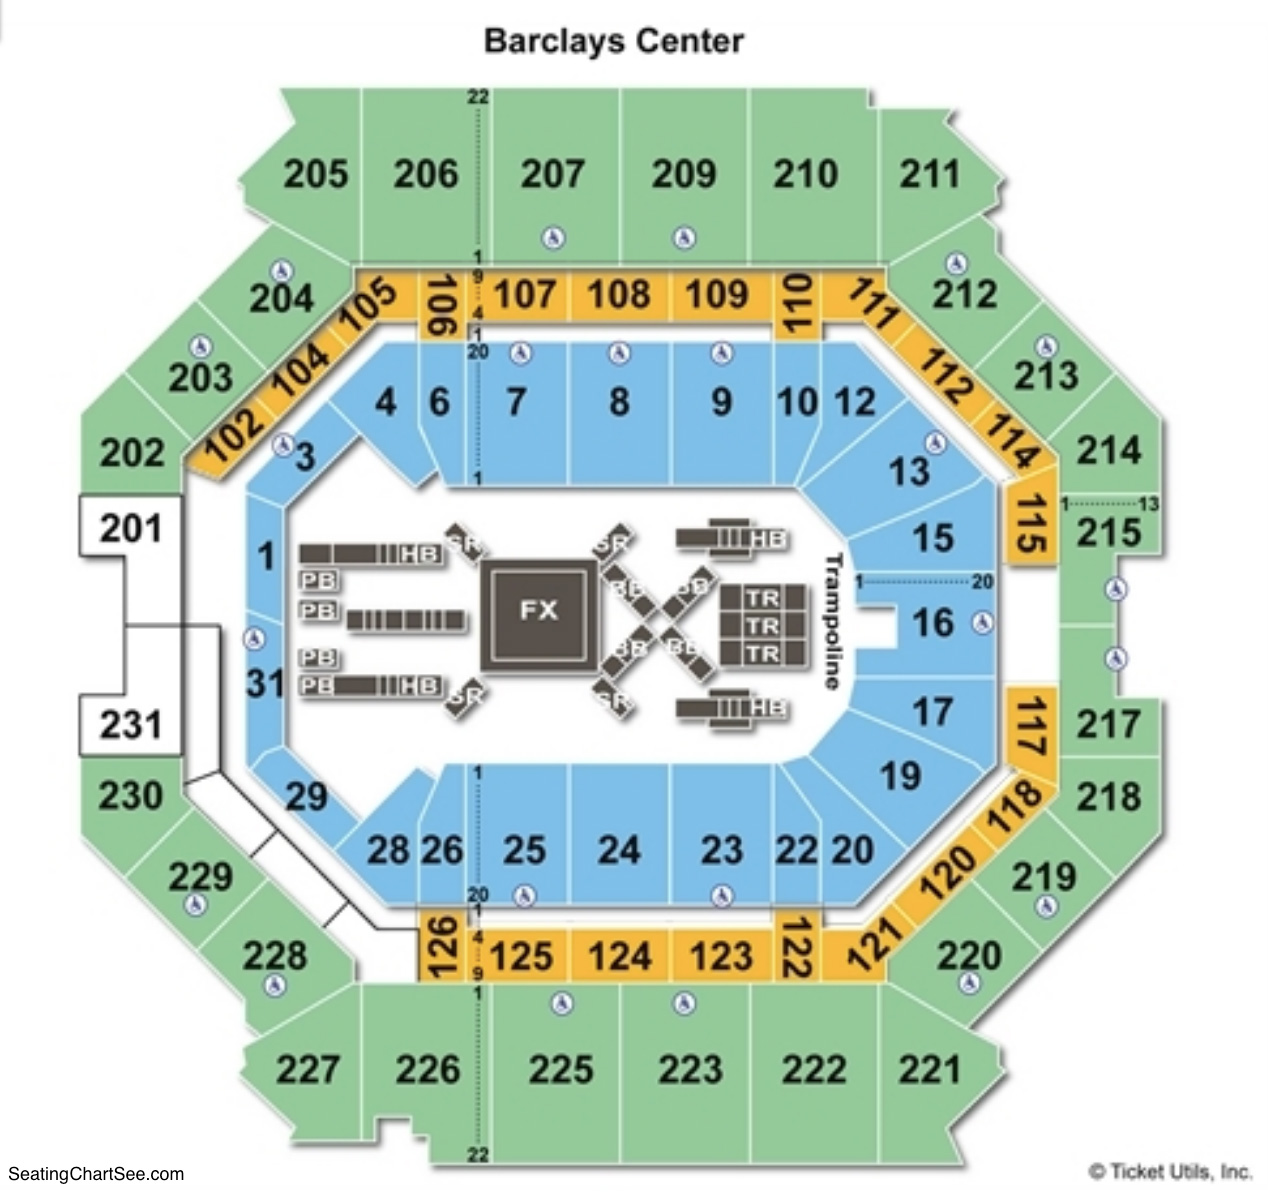 Barclays Center Seating Chart Gymnastics